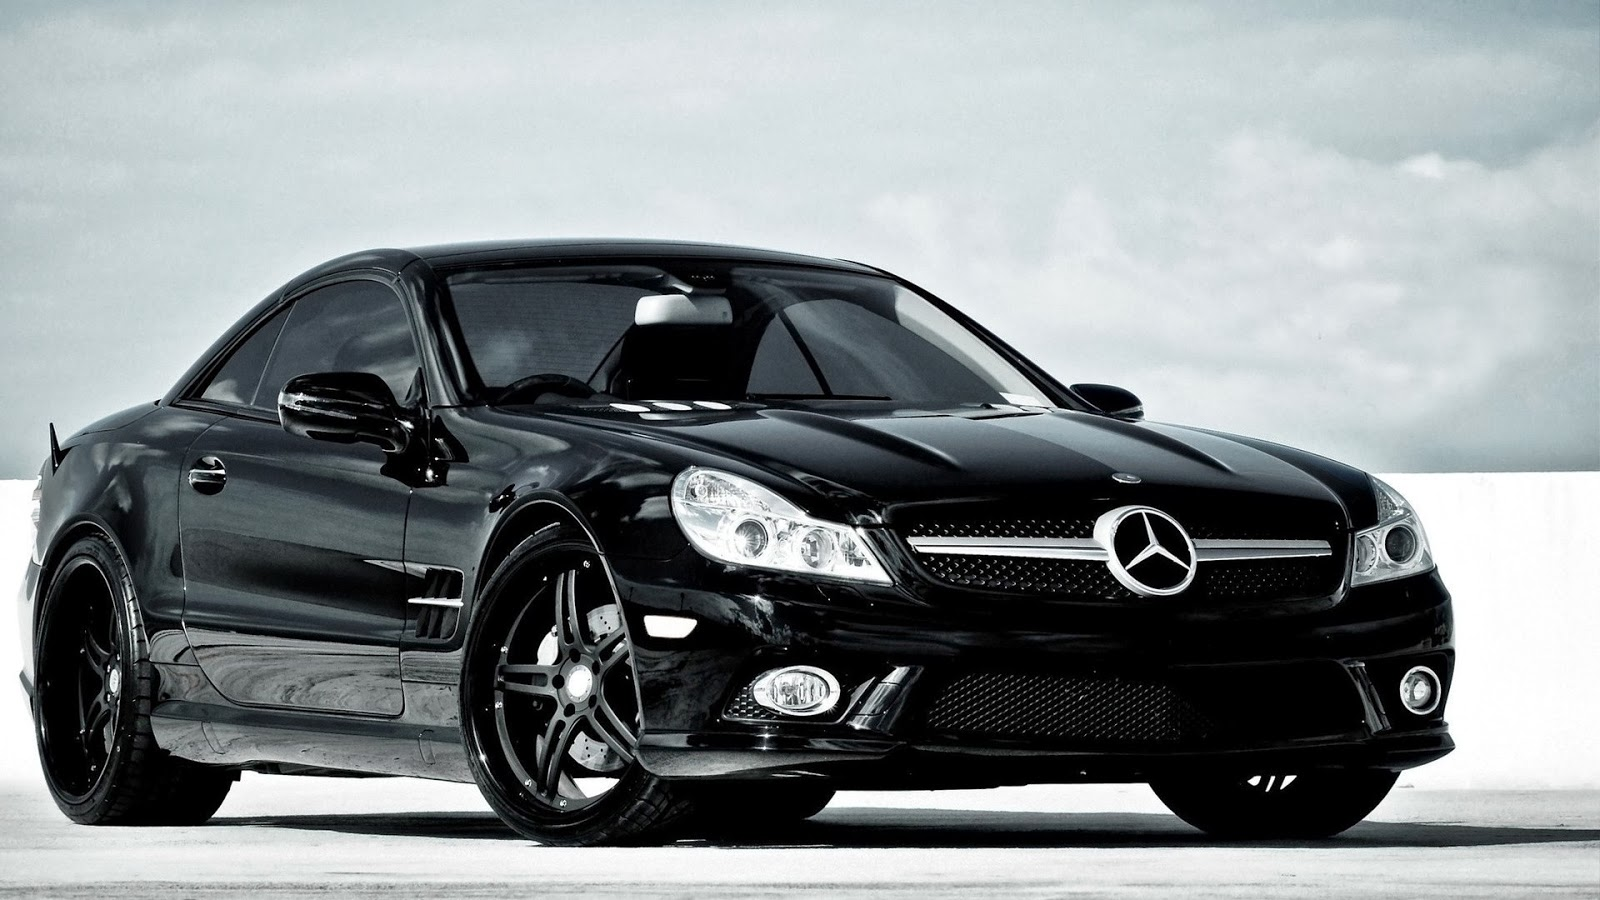 Mercedes benz cars photo best wallpaper 2014 for Mercedes benz cars images